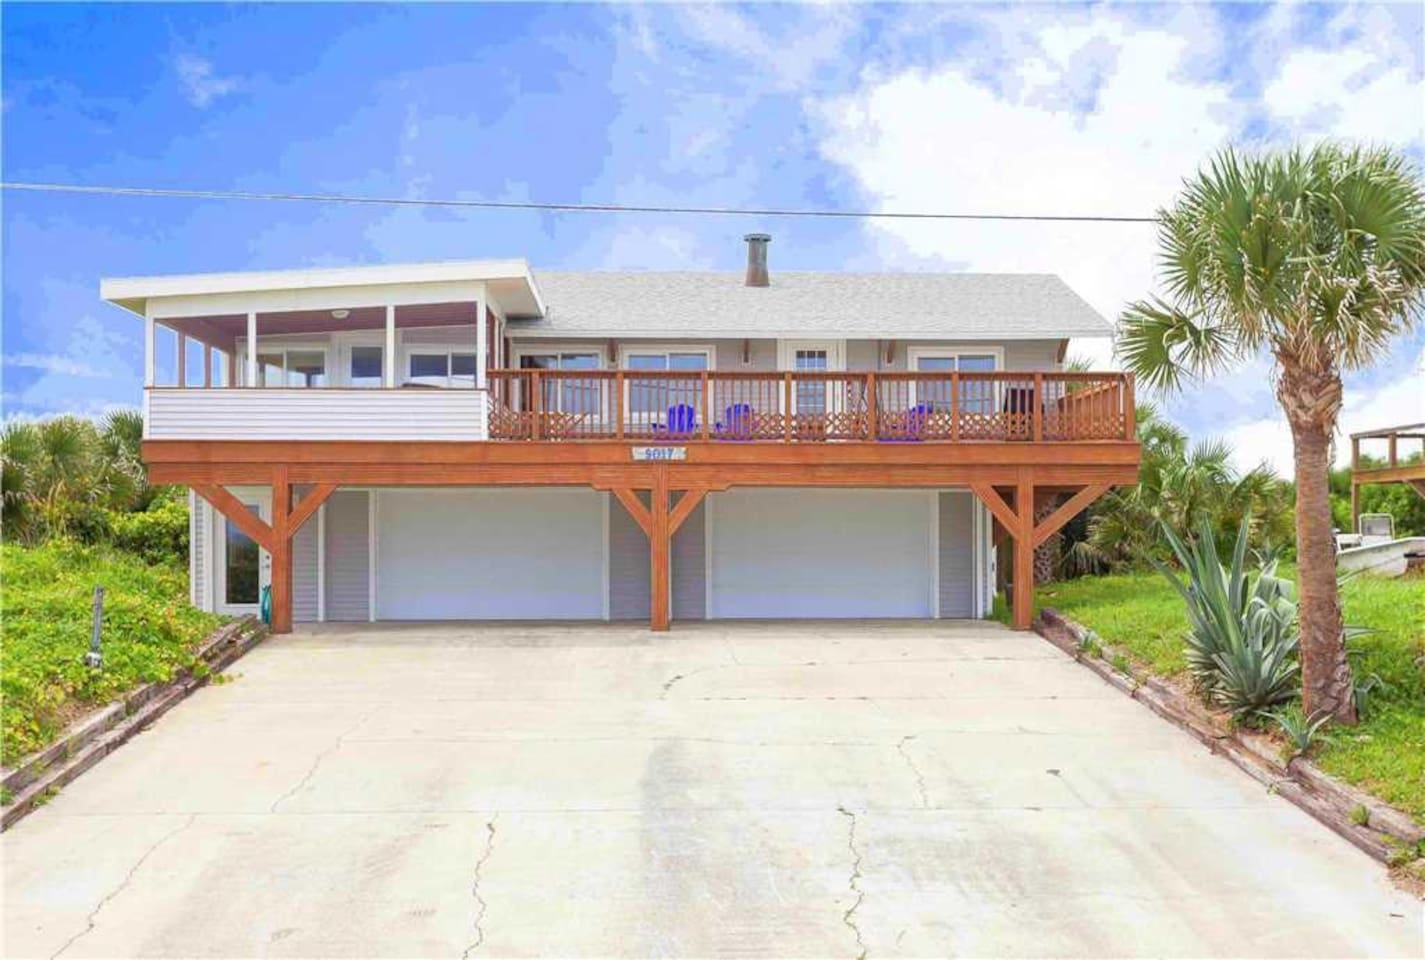 Welcome to Lenora's Pelican Beach House! - Welcome to Lenora's Pelican Beach House, a 4 bedroom and 4 bathroom house that is less